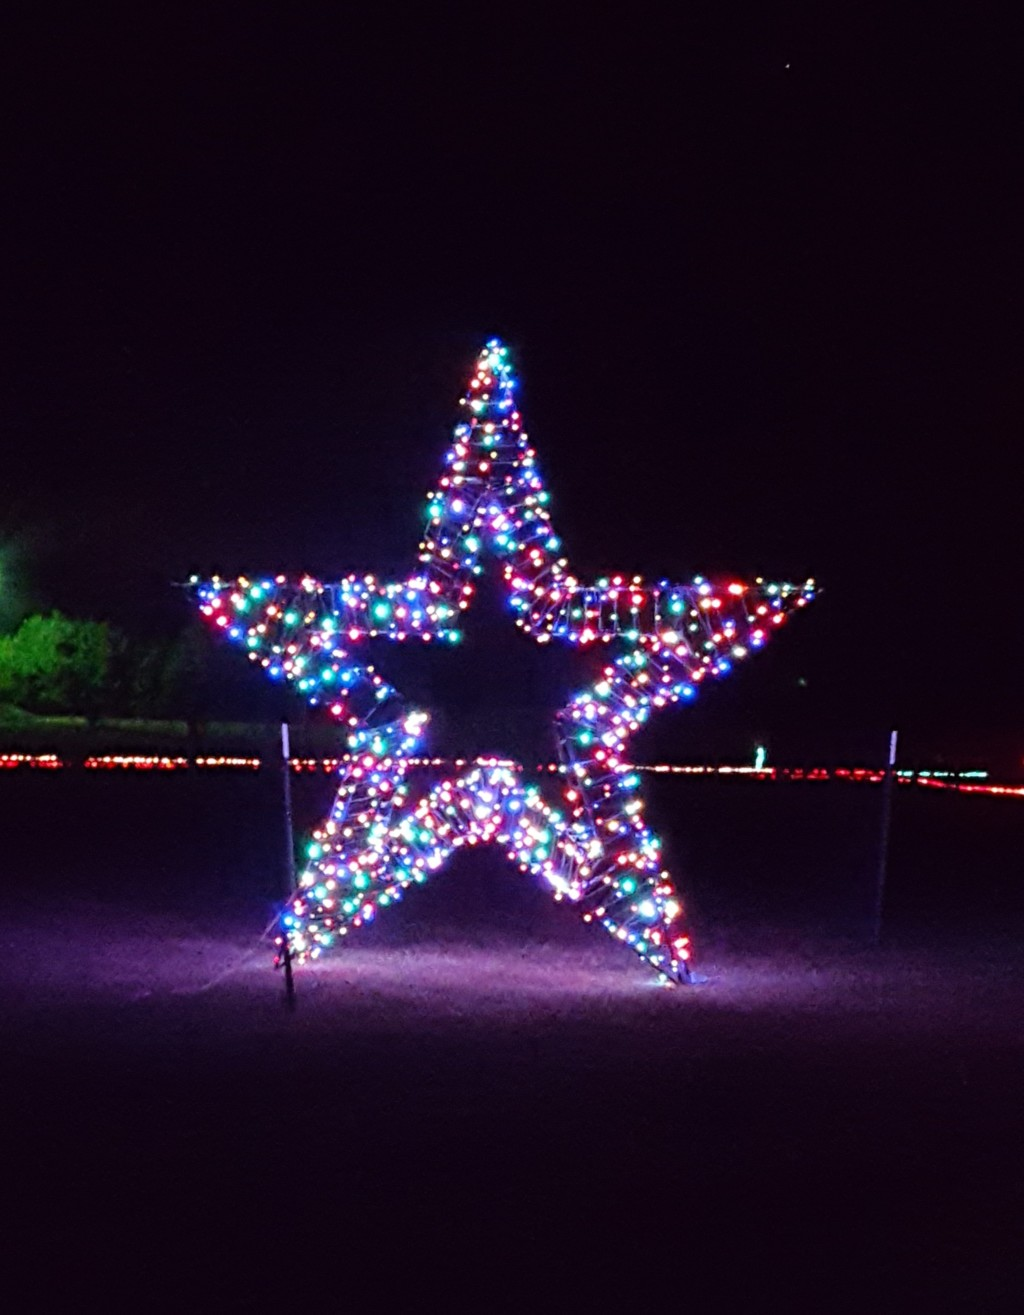 star-at-christmas-light-fest-close-up